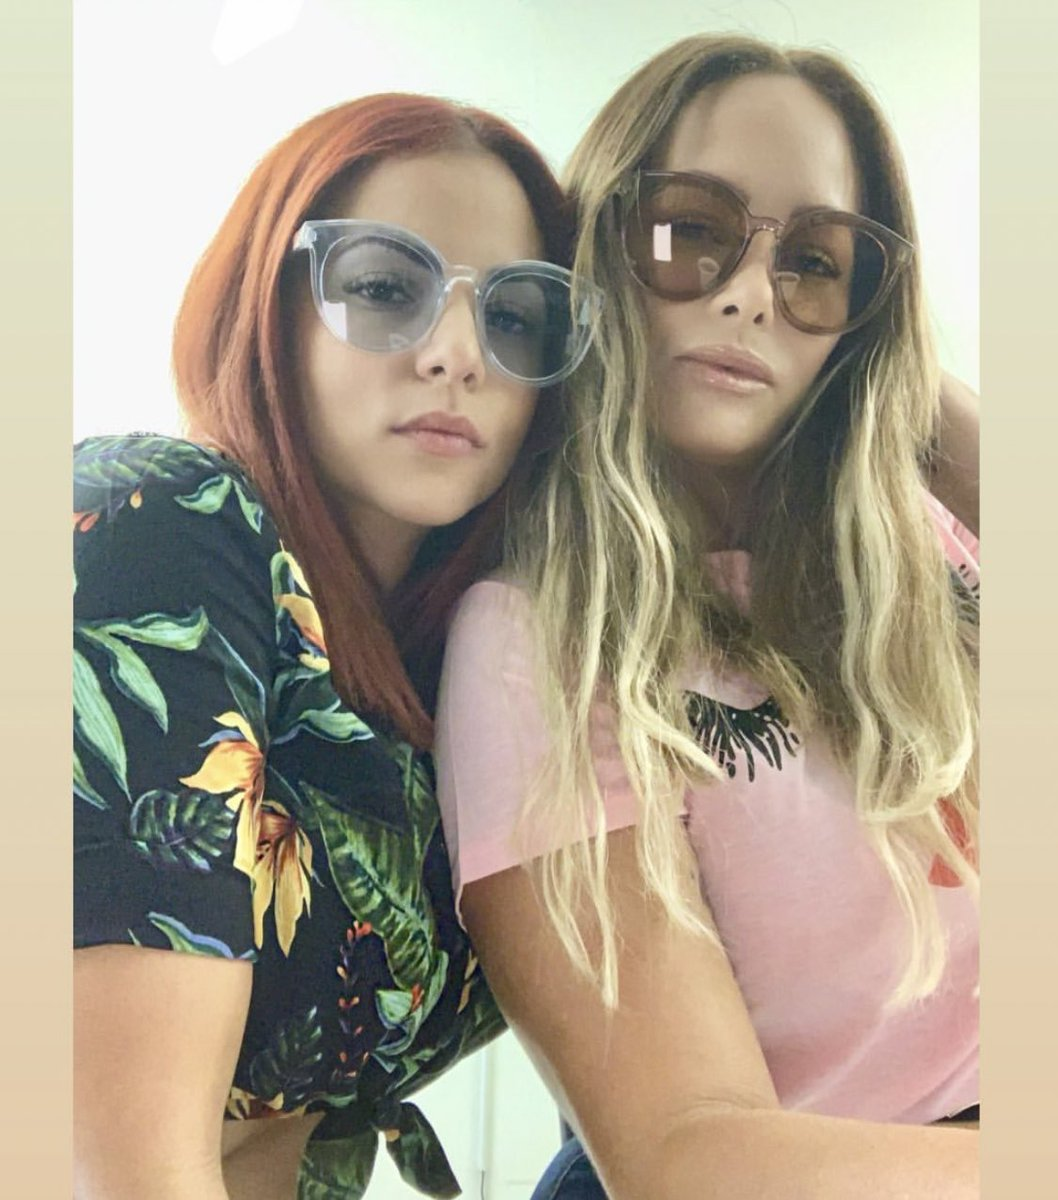 🗺....SUNDAY FUNDAY.... 🗺 Nuestras hermosas #ChicasChic @drita19 @guzmelycotto con sus #ChicSunglasses . . .  #happysunday#womanwithstyle#chicbykw#fashionstyle#chićwoman#unique#sunglasses#styling#glam#instafriends#islandgirl#foreverchic#puertorico#jevasapoyandojevas https://t.co/xTQrfhIQbu